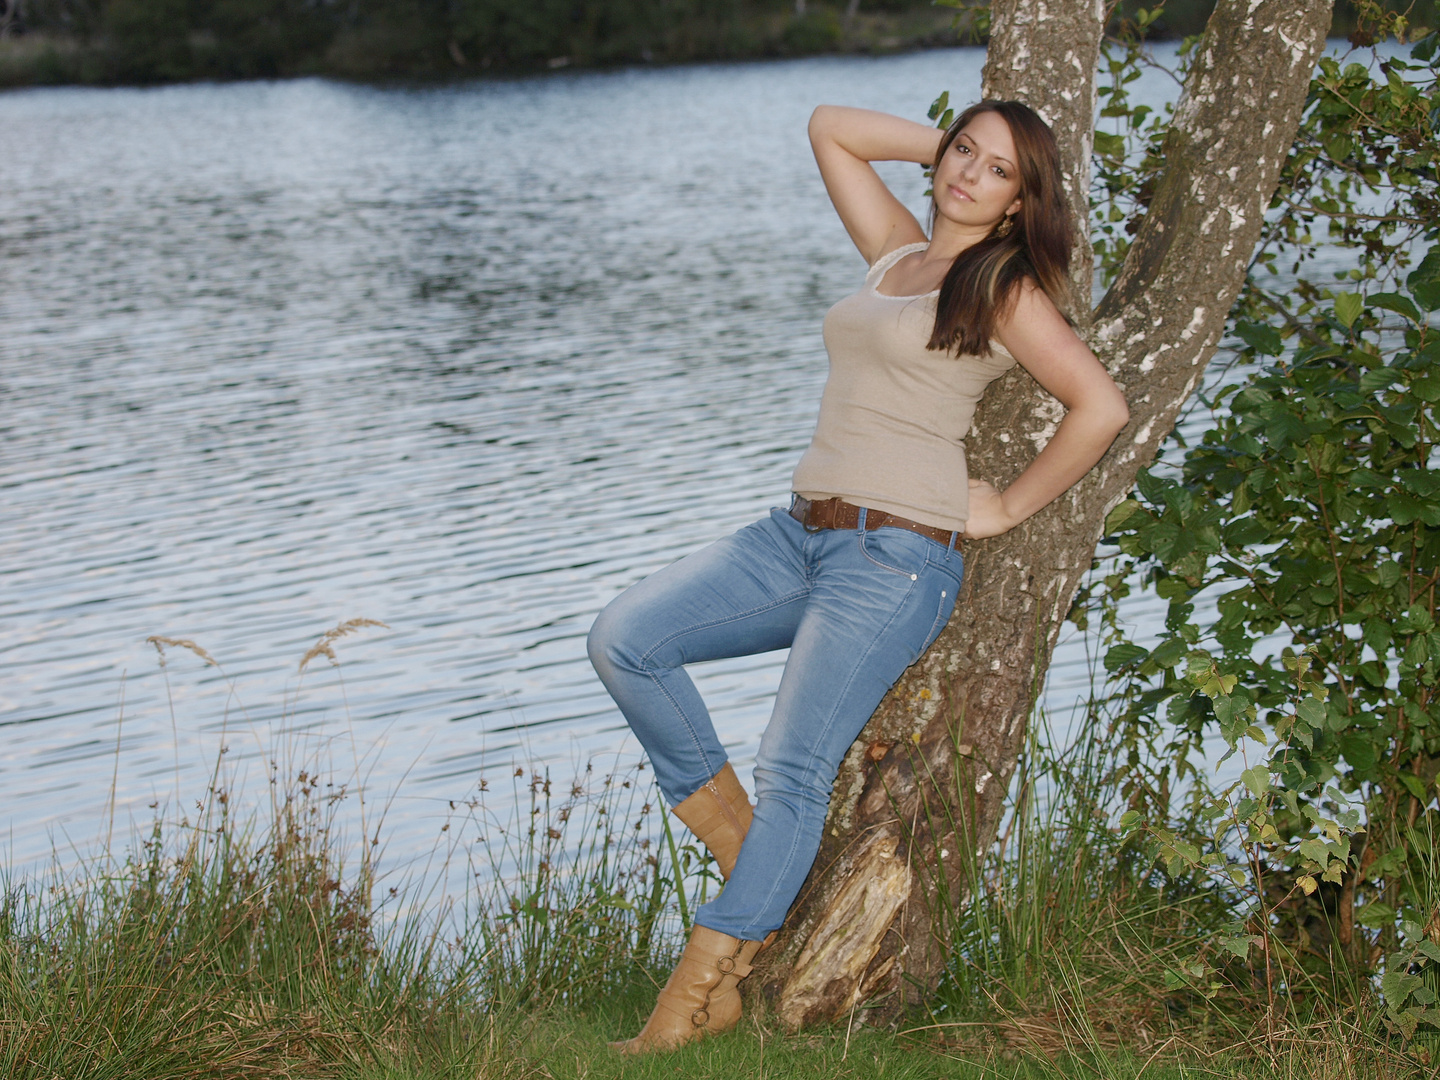 Leaning on a tree